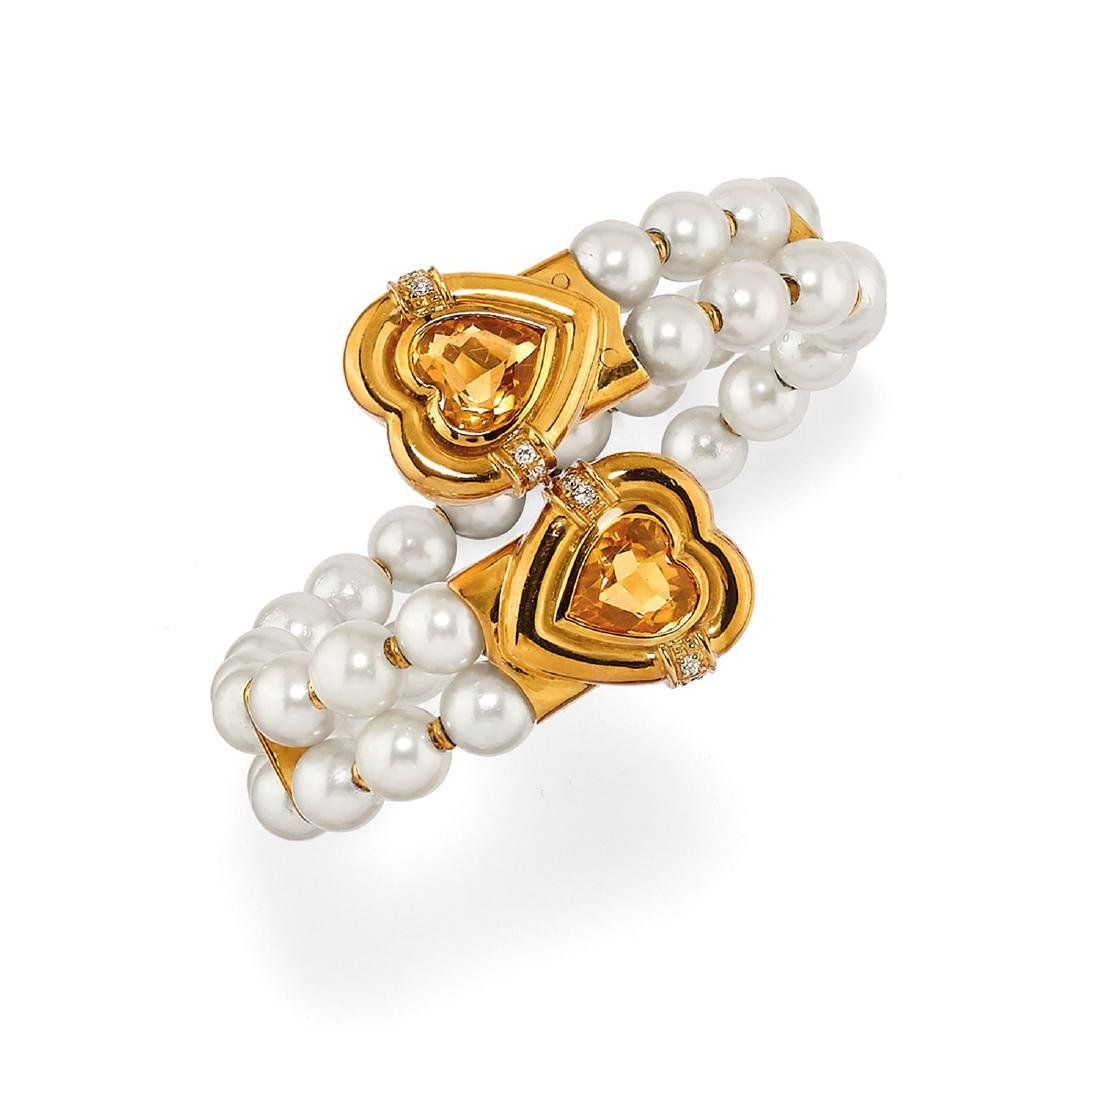 A 18K yellow gold, cultured pearl and diamond bangle